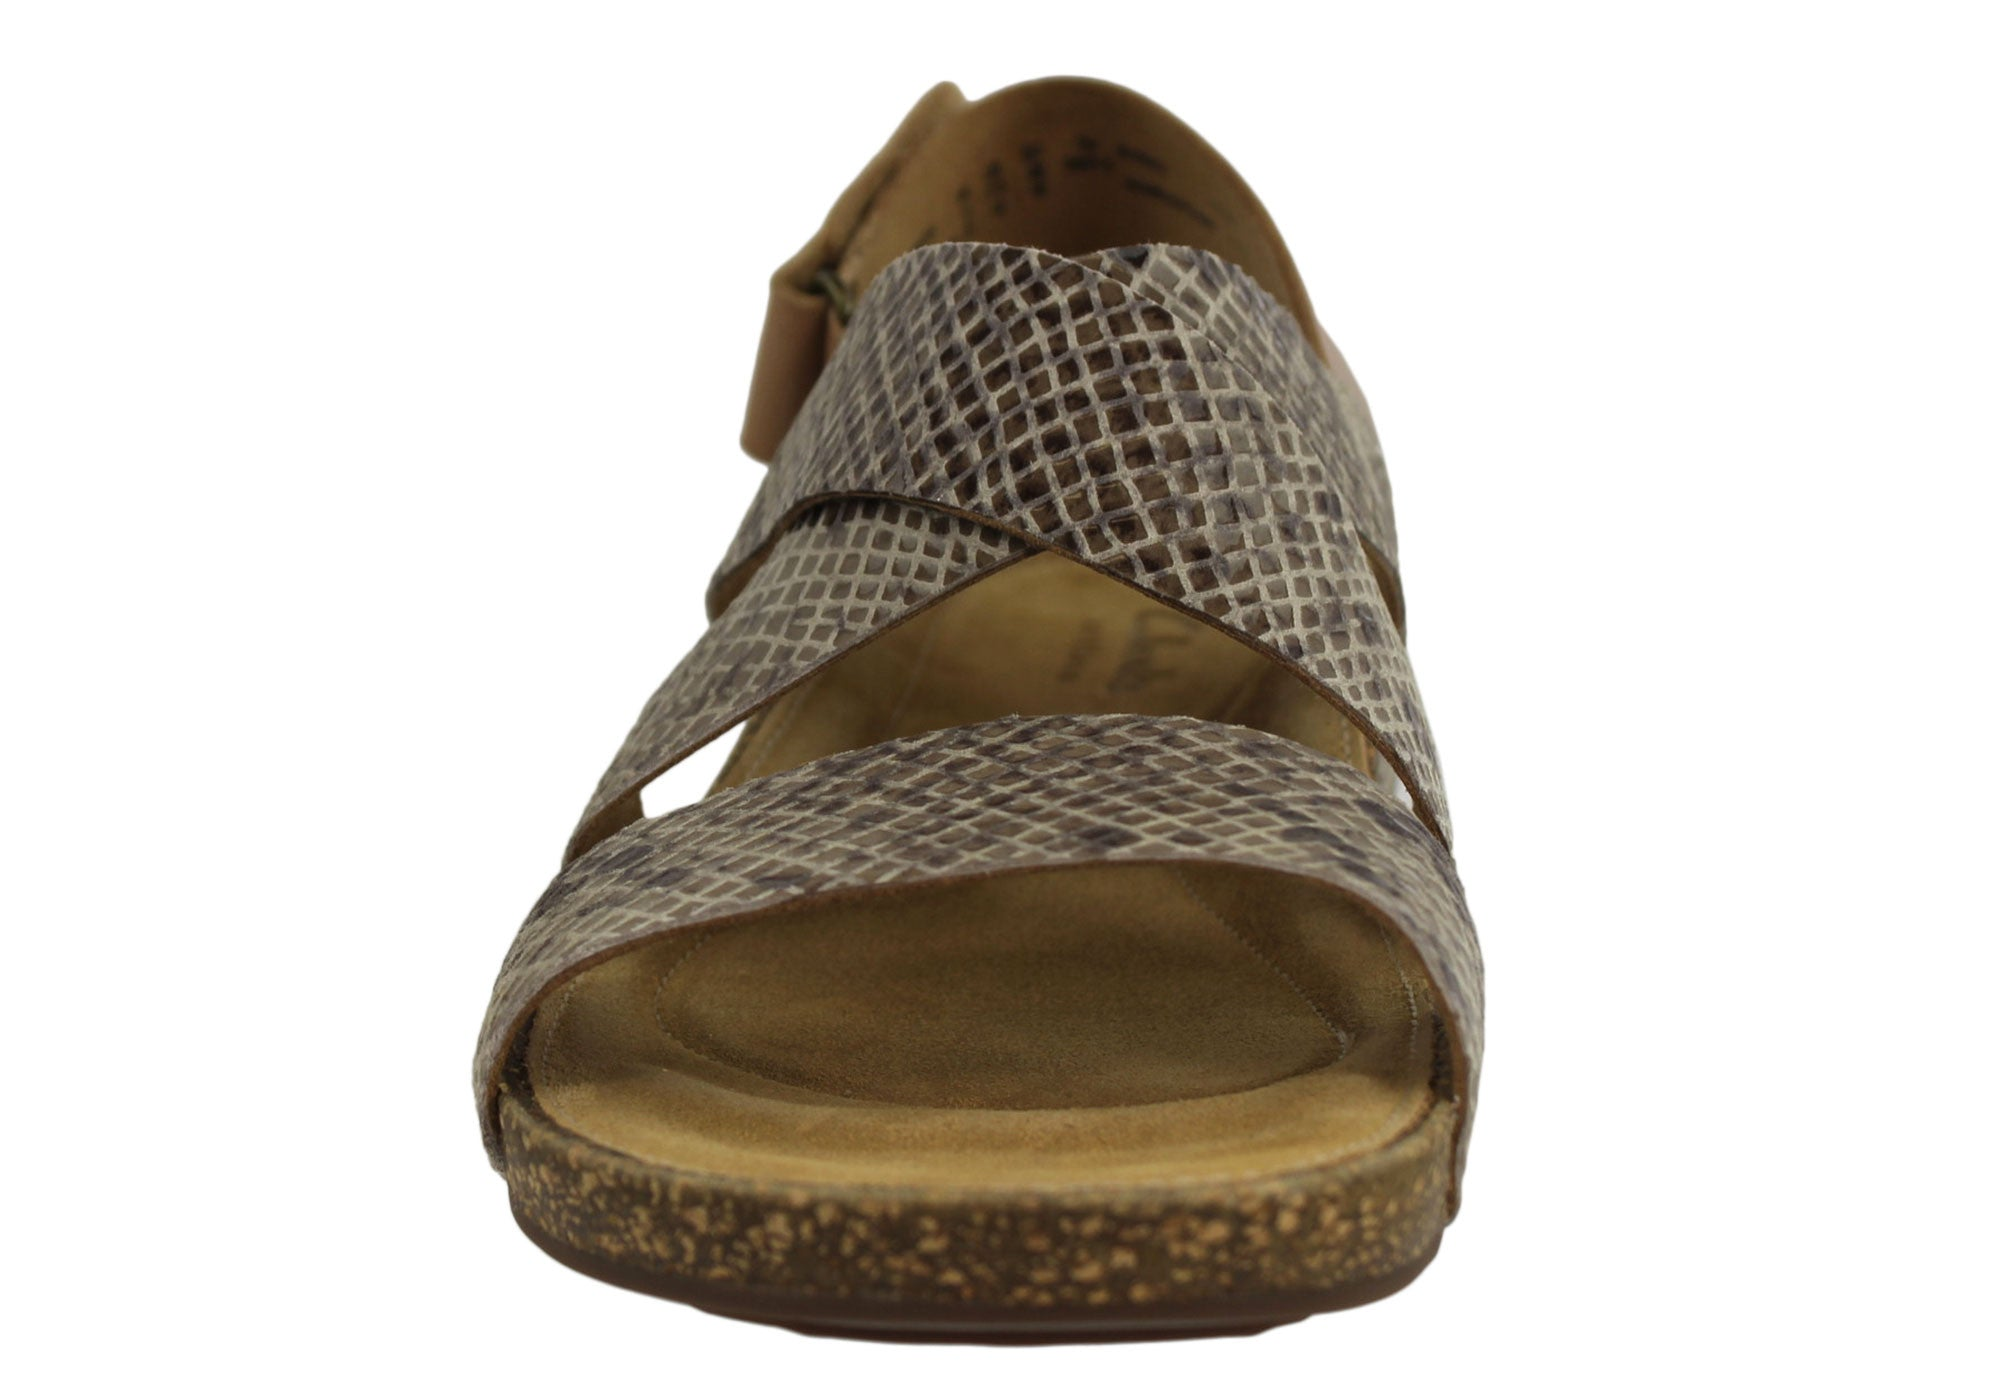 Clarks Perri Dunes Womens Leather Comfortable Sandals